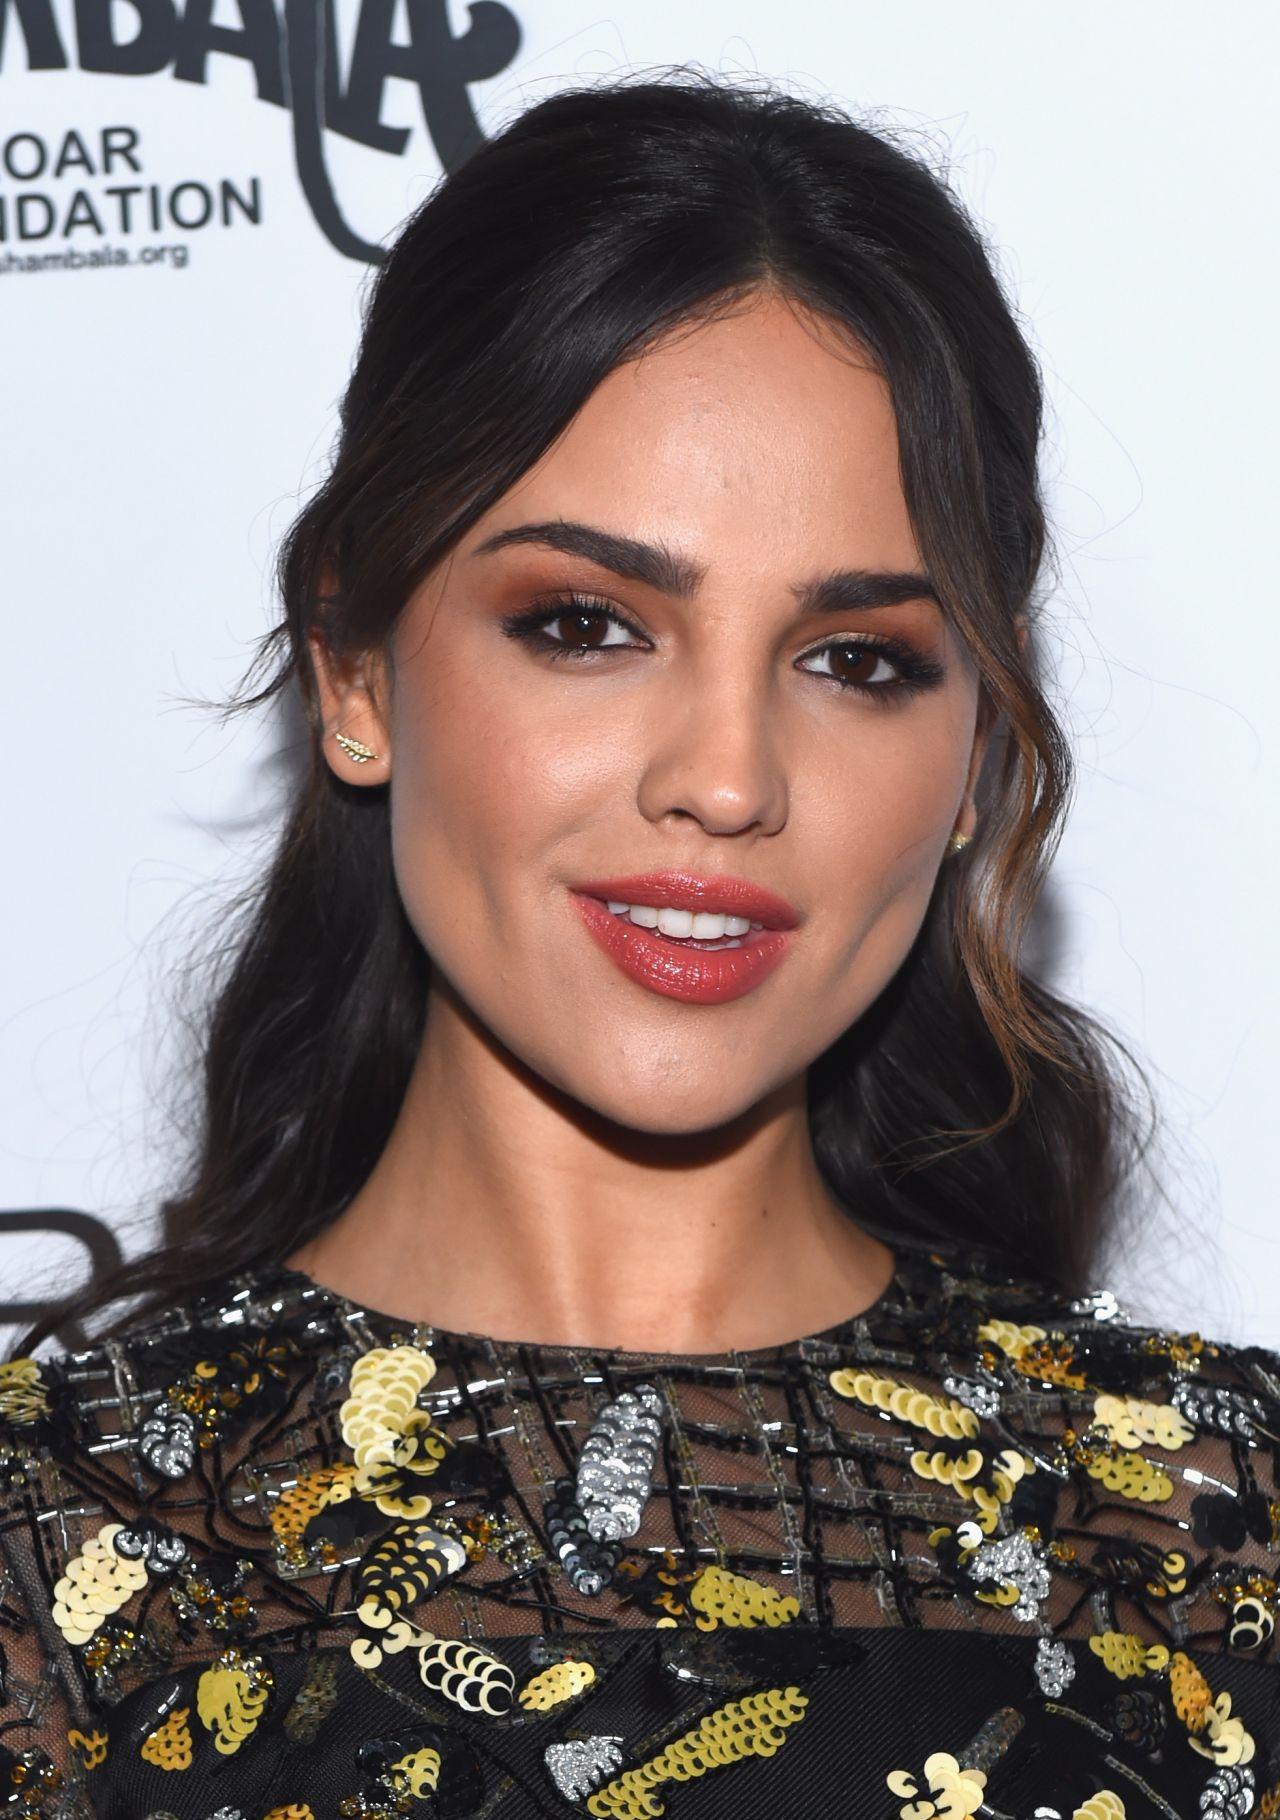 Young Eiza Gonzalez nude photos 2019